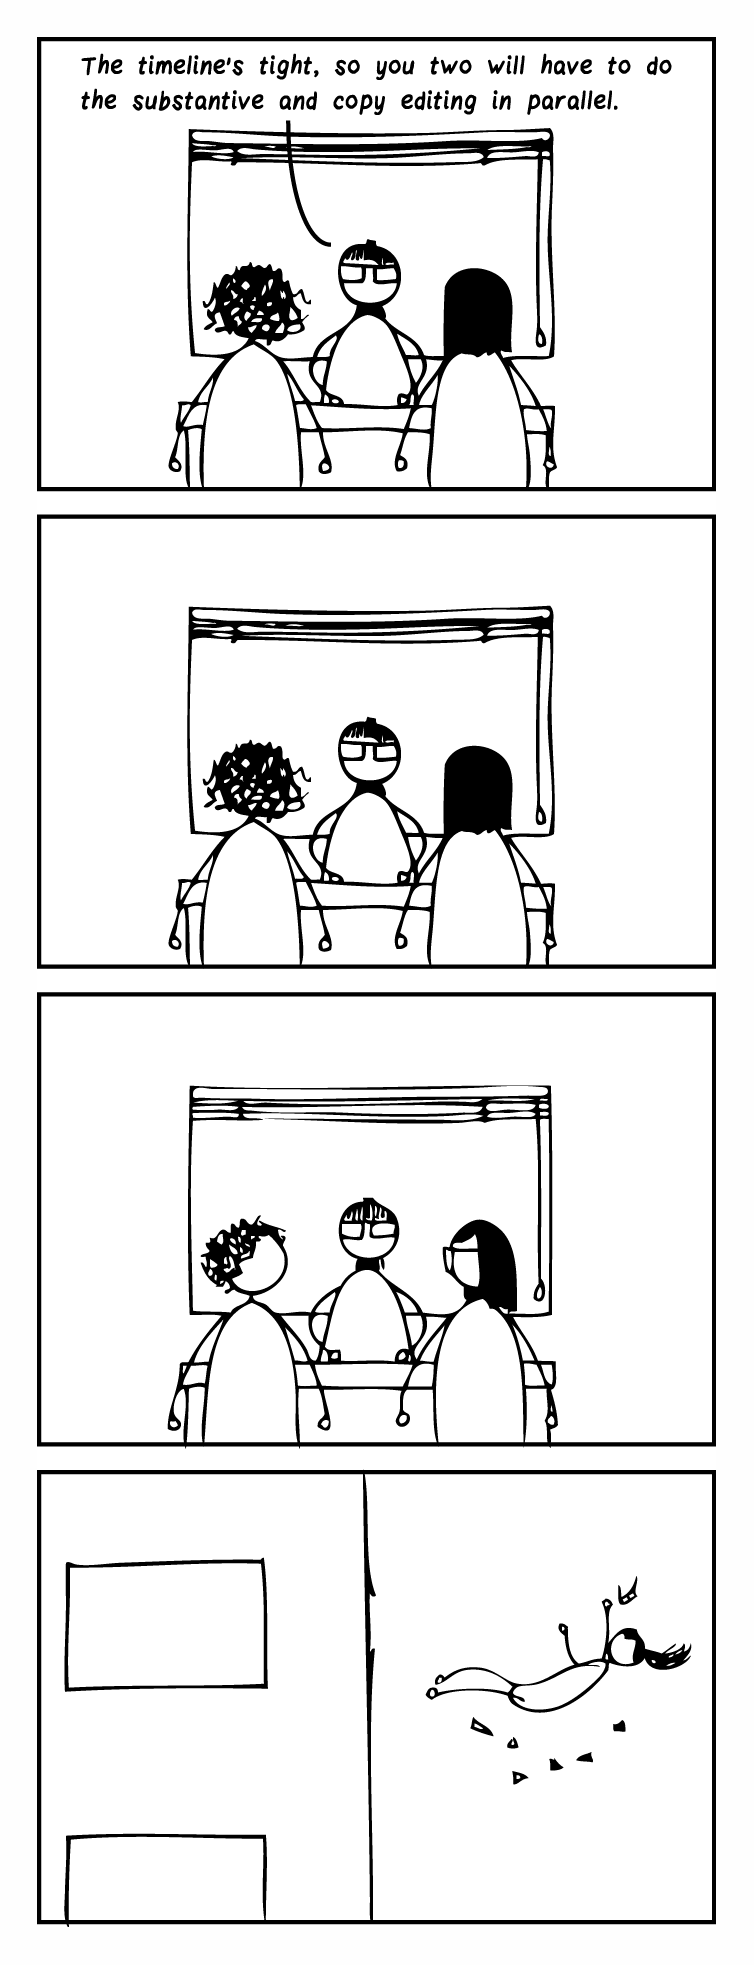 "Four-frame cartoon. Frame 1: A managing editor sits at a desk and talks to two editors. She says, ""The timeline's tight, so you two will have to do the substantive and copy editing in parallel."" Frame 2: The editors stare back at her. Frame 3: The editors look at one another. Frame 4: You see the managing editor falling, having been thrown out the window."